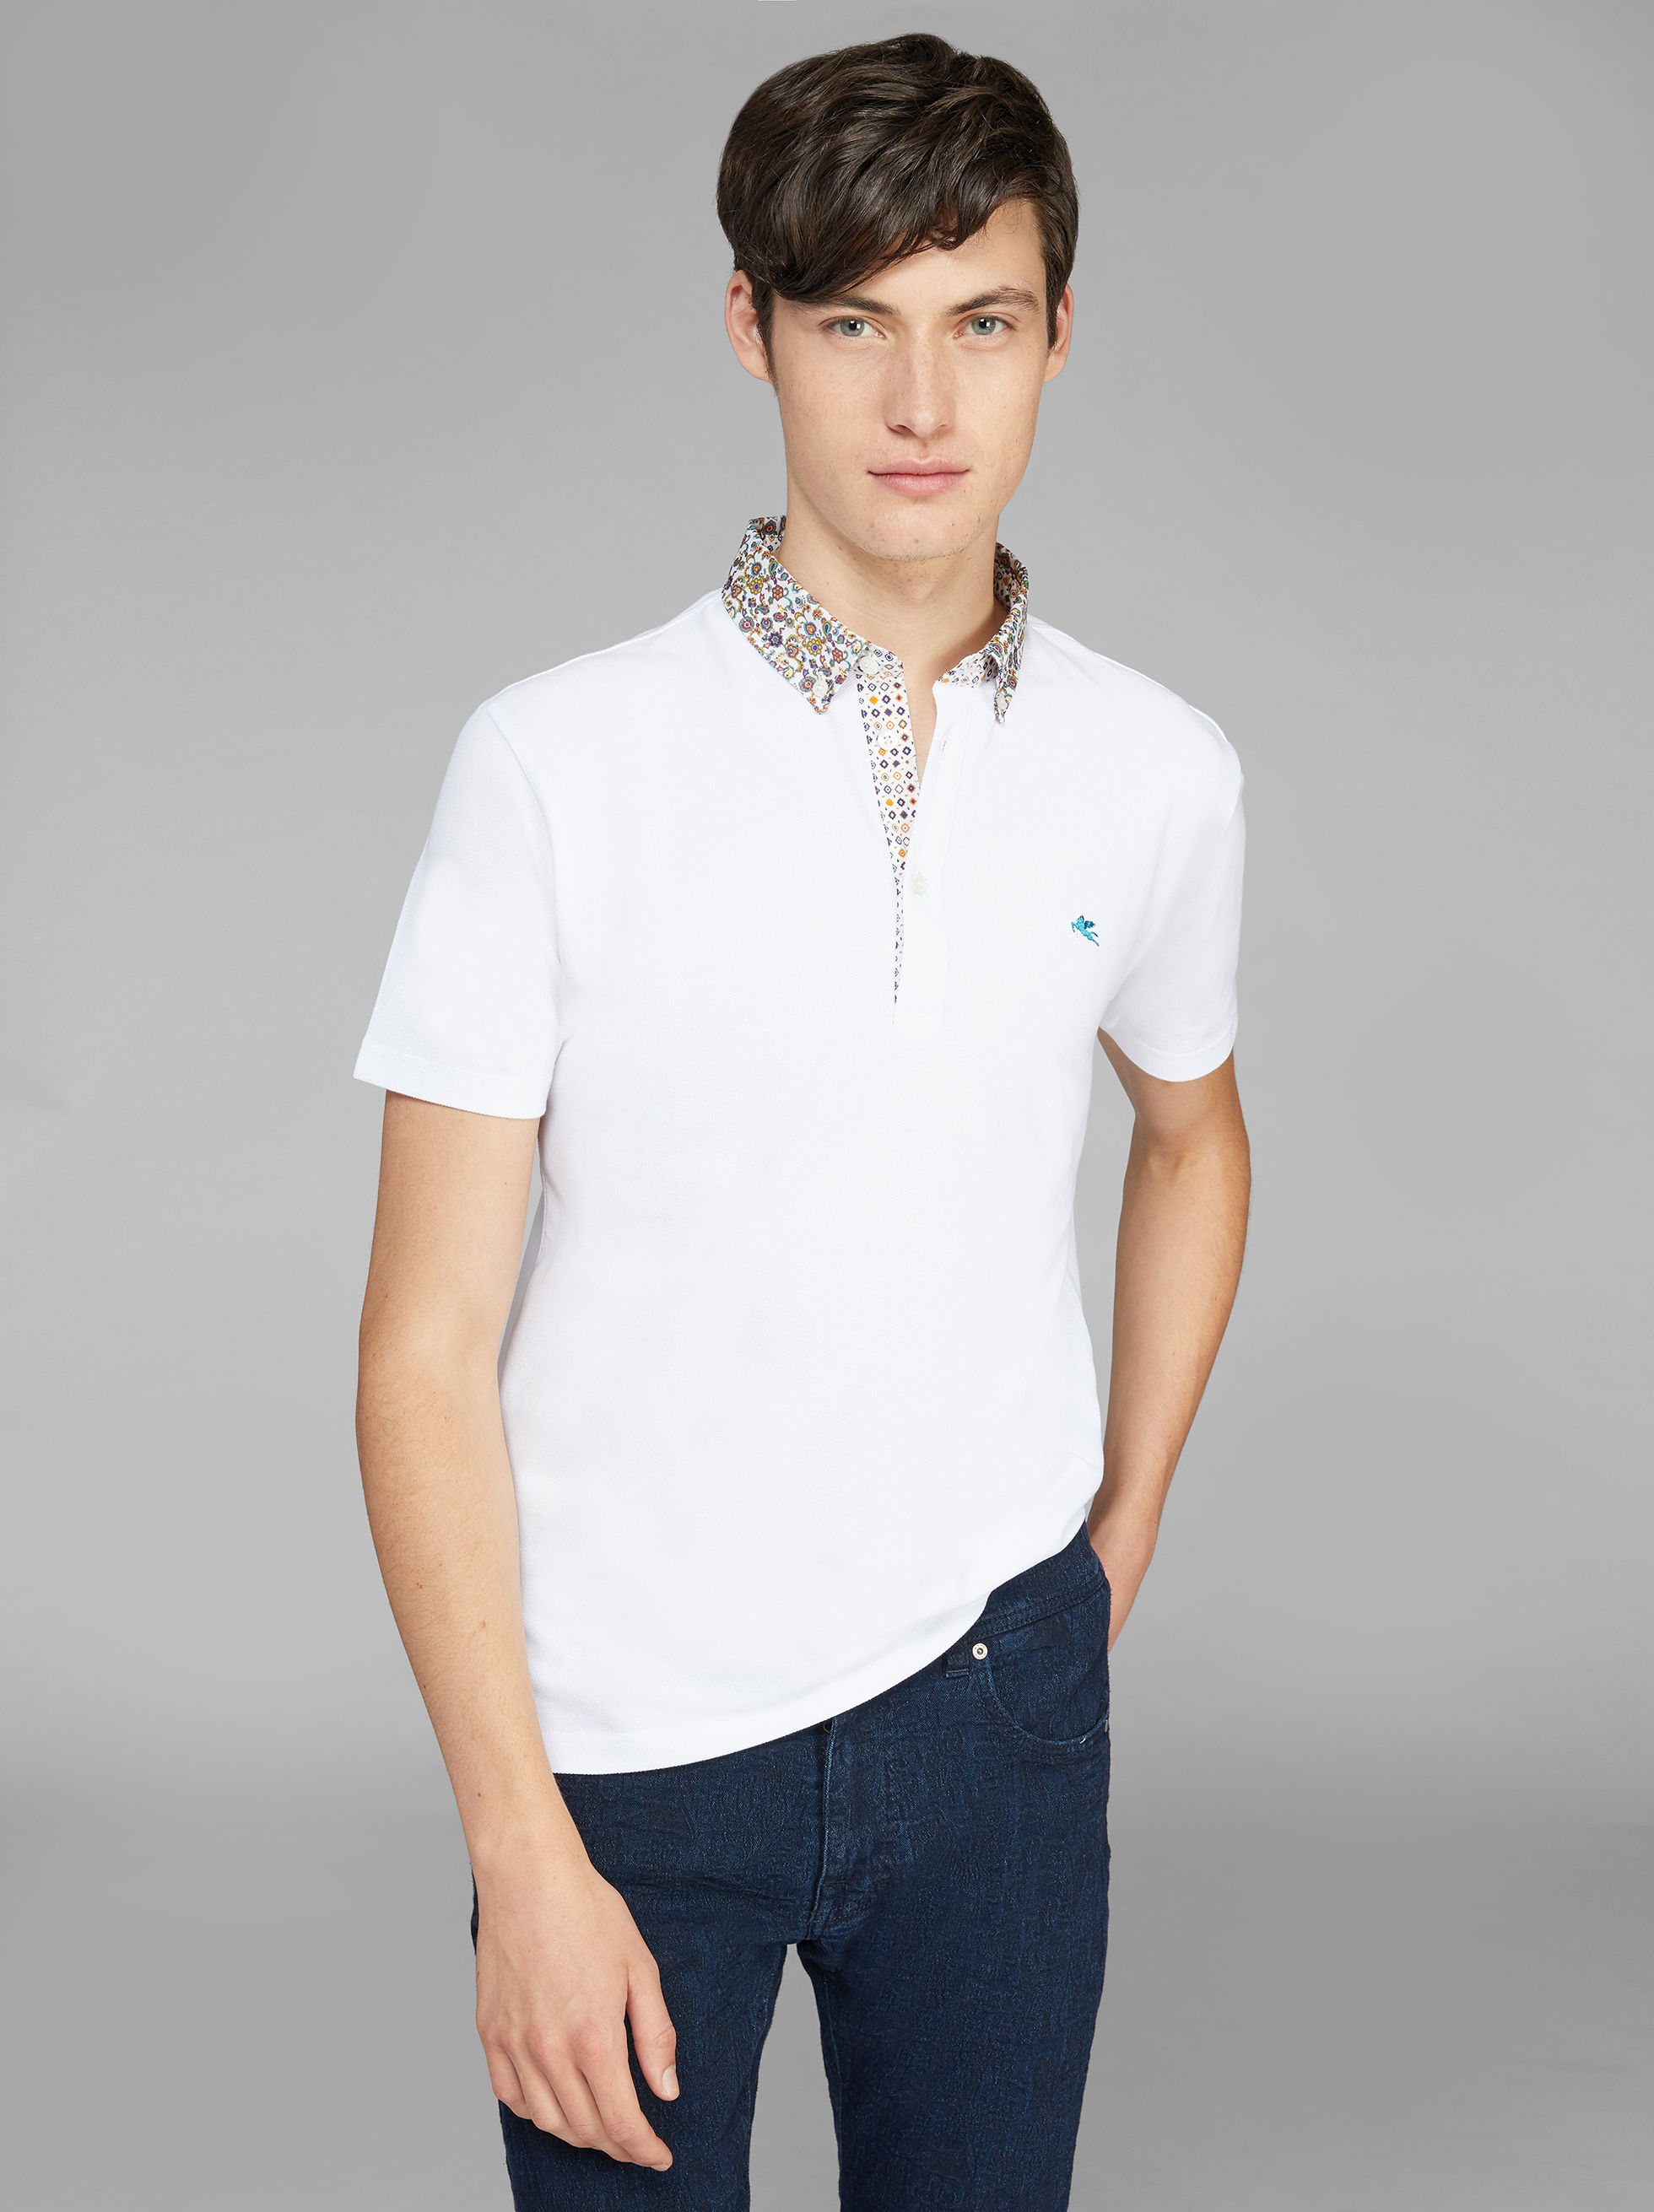 POLO SHIRT WITH SHIRT INSERTS